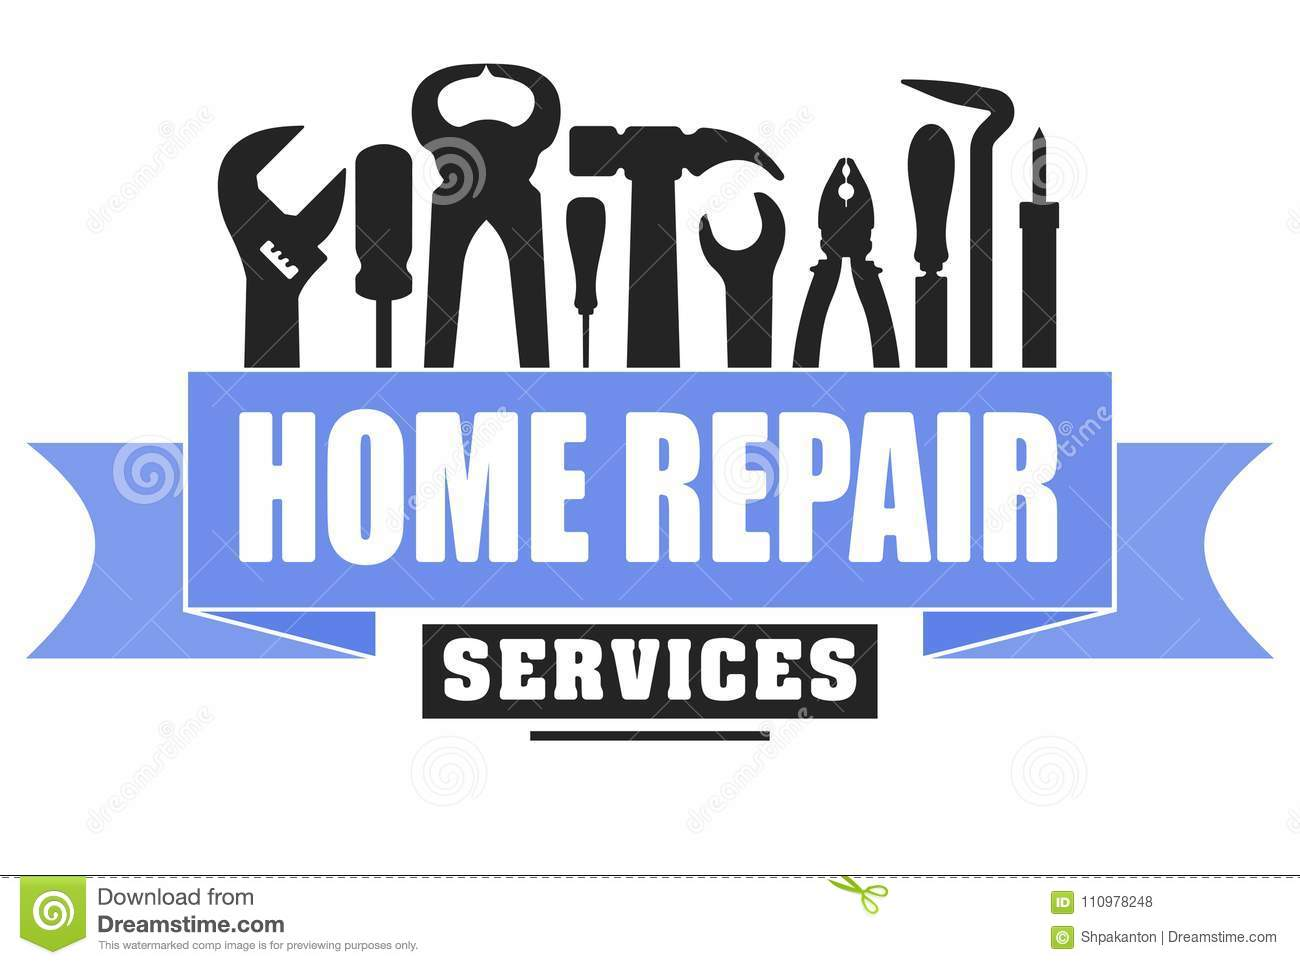 Home Repair Services Vector Design For Your Logo Or Emblem With